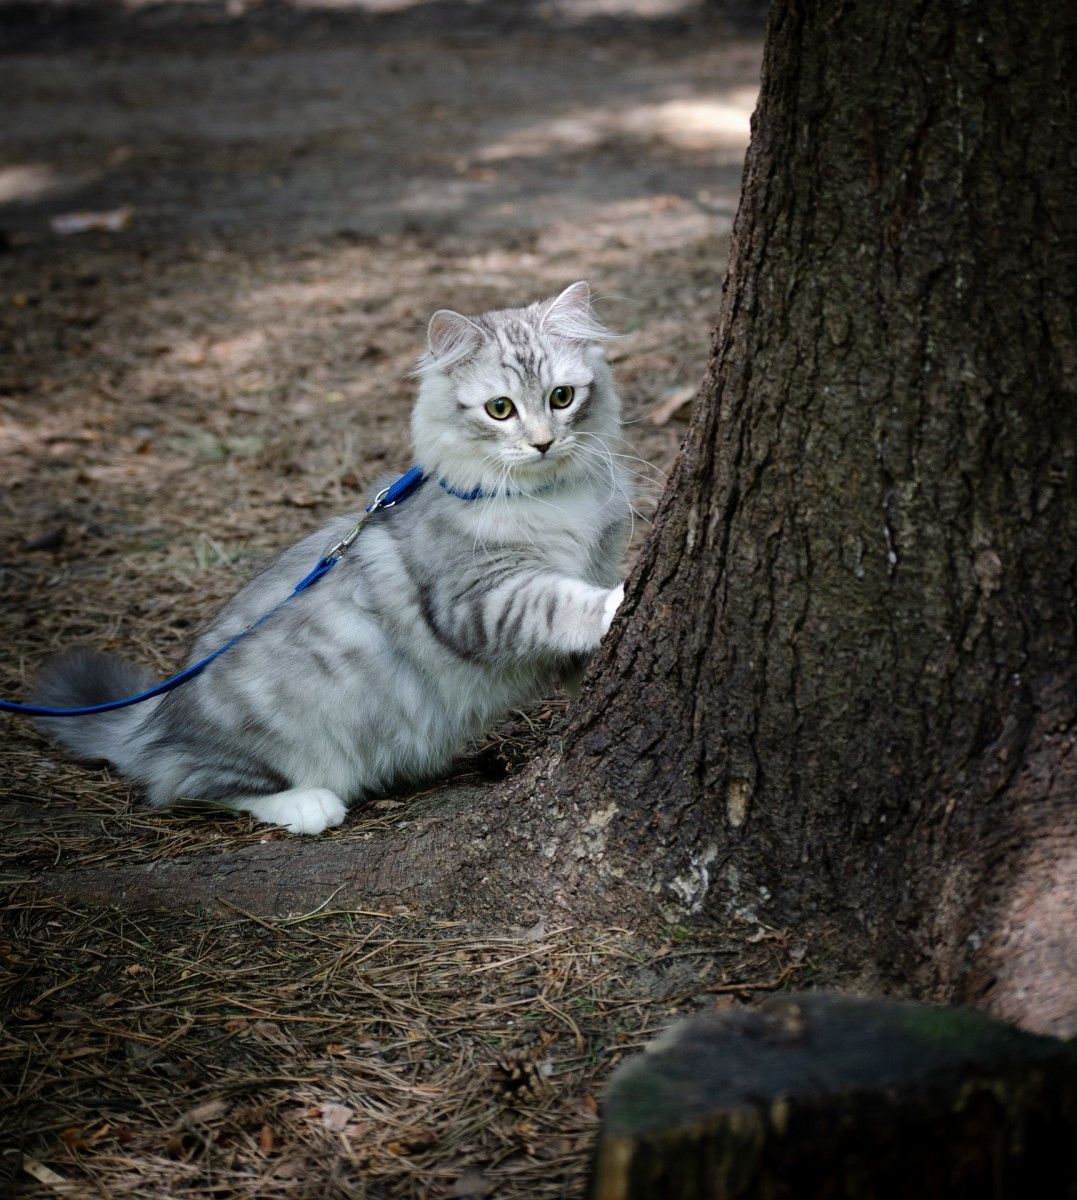 Leashes and harnesses make it safe for kitties to go for walks outside.